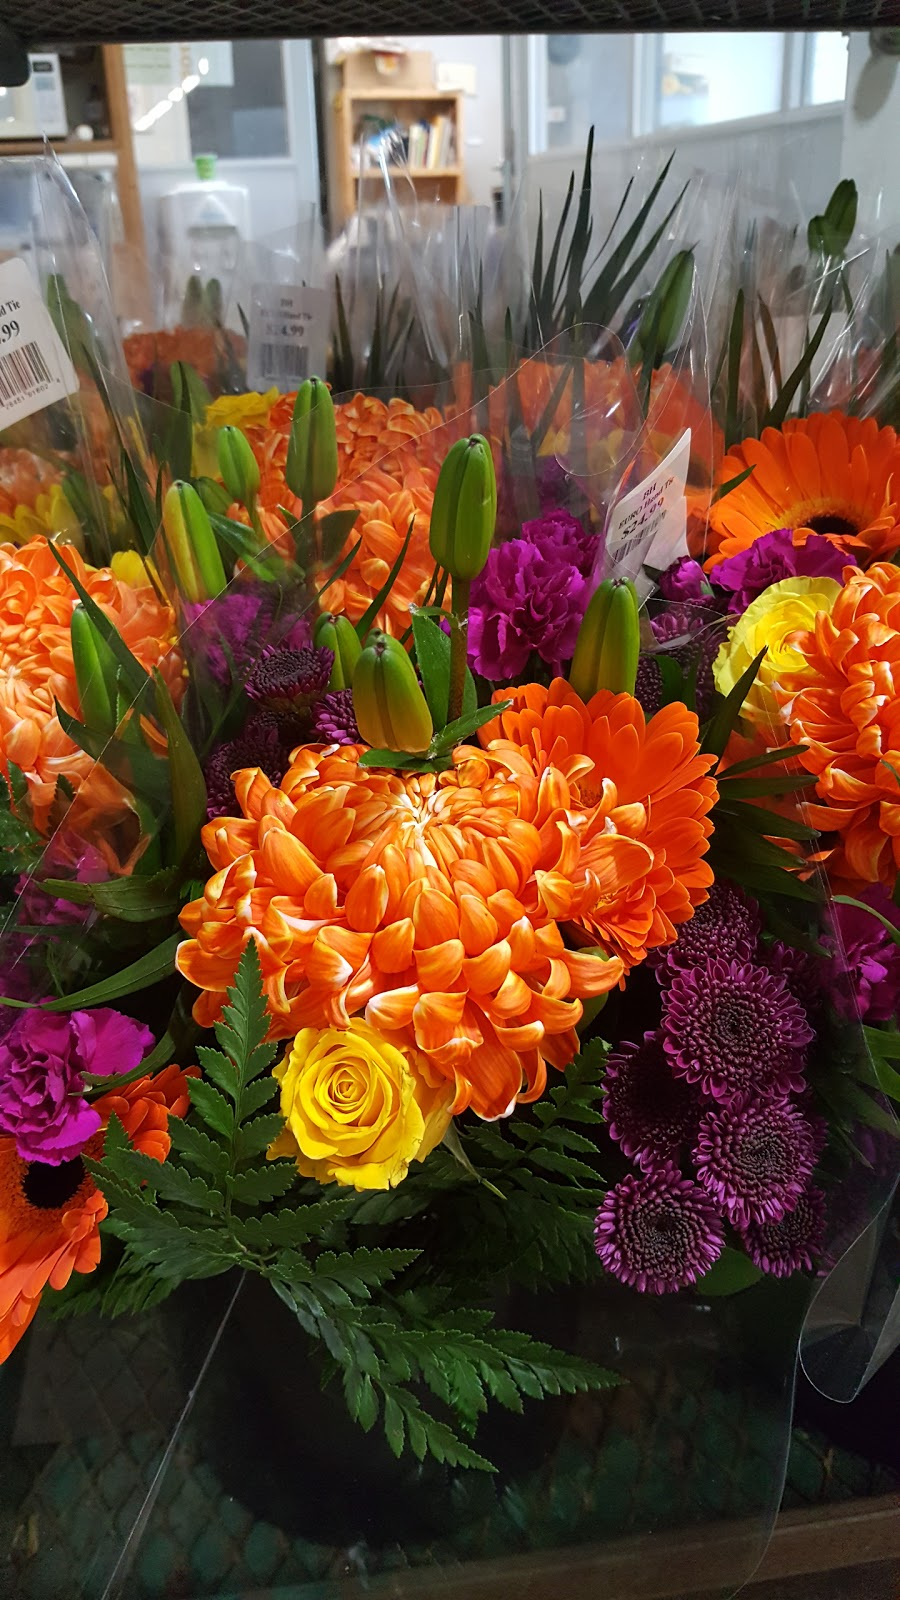 B H Flower Wholesale 910 Mid Way Blvd Mississauga On L5t 1v9 Canada